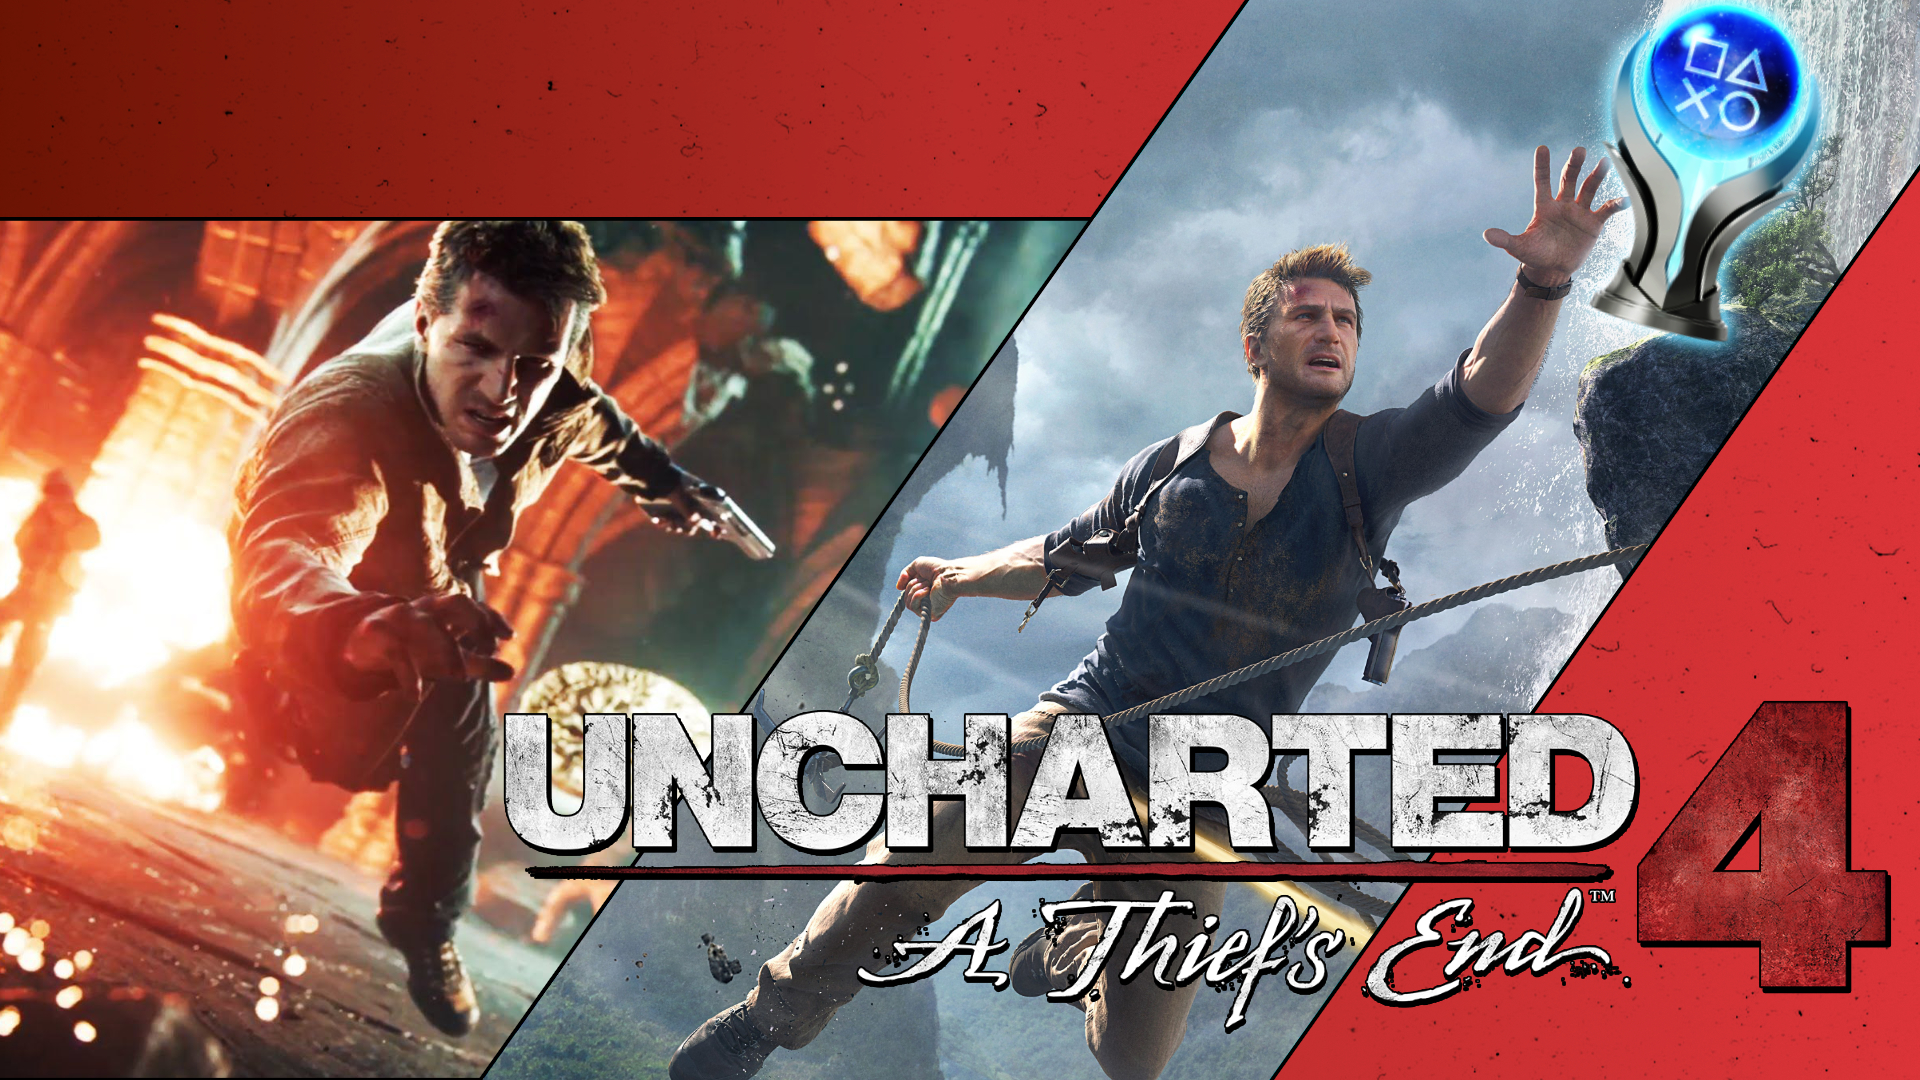 SYP-Uncharted4-clean.jpg